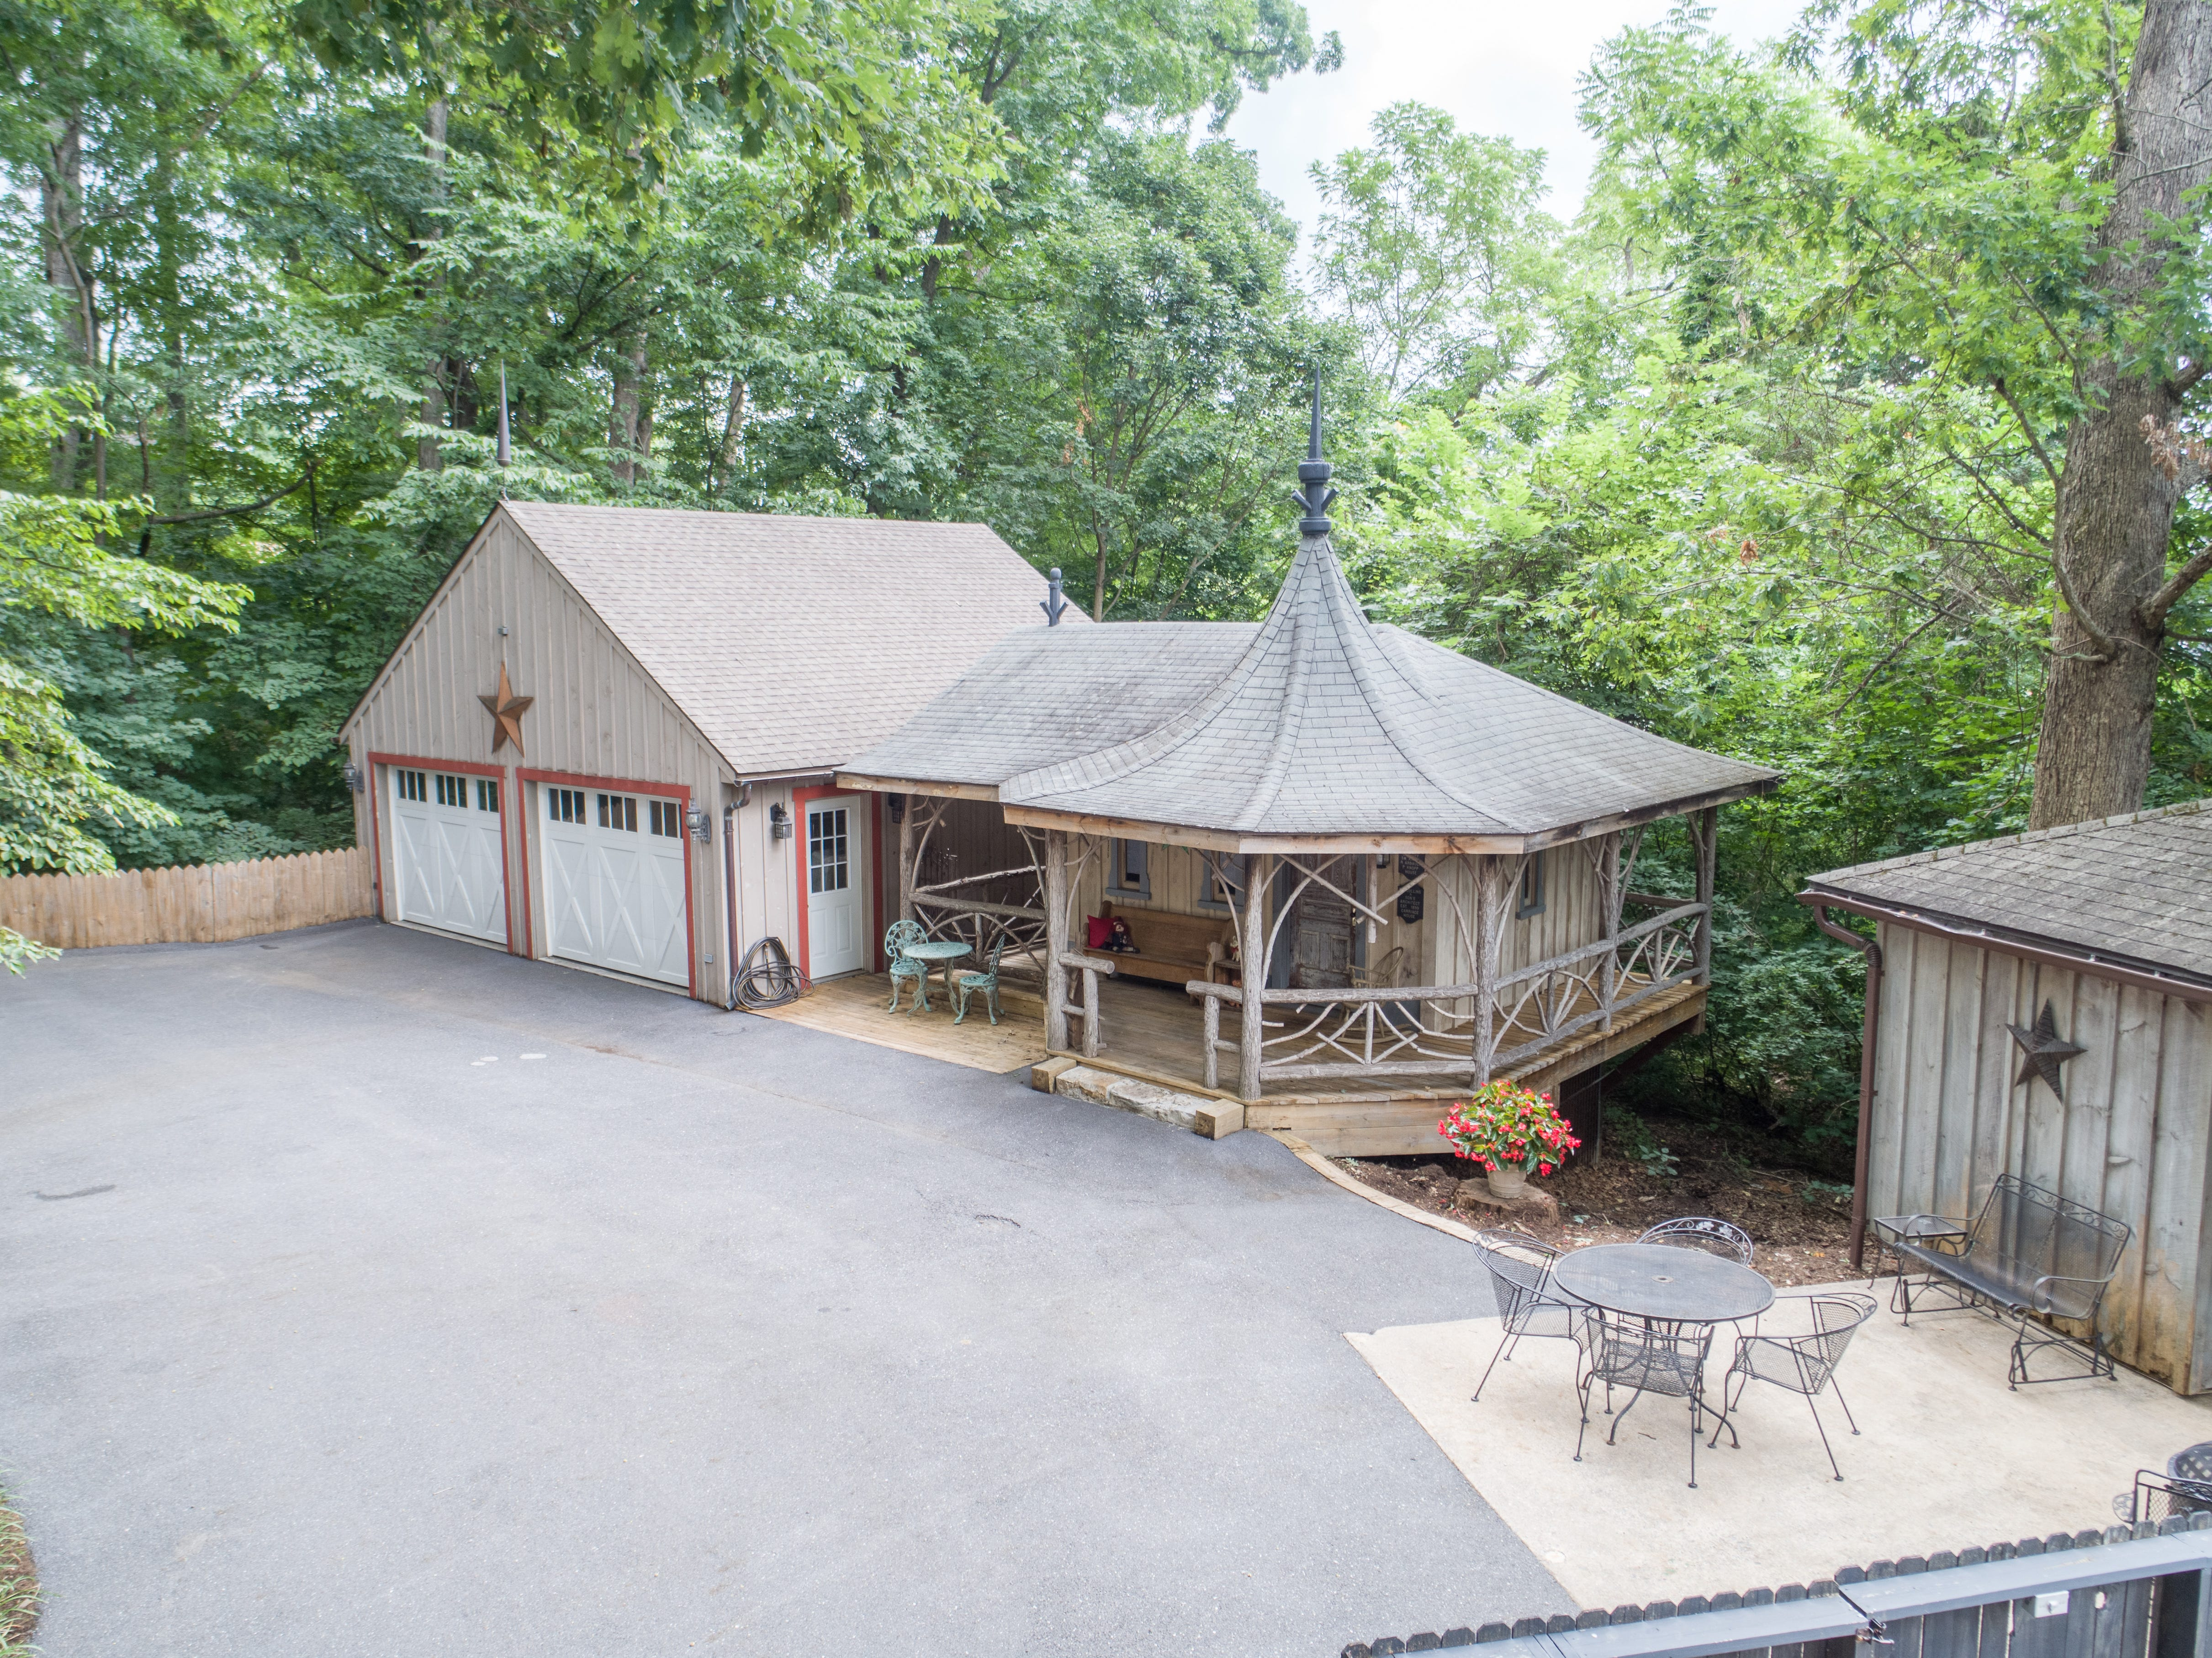 This four bedroom, four bathroom home in Staunton's Baldwin Acres was custom-built by Simon Knopp in 1966. With a grand entry and an enclosed copper porch, this home is the definition of sophistication. It is listed for $460,000 and located on Windemere Drive.